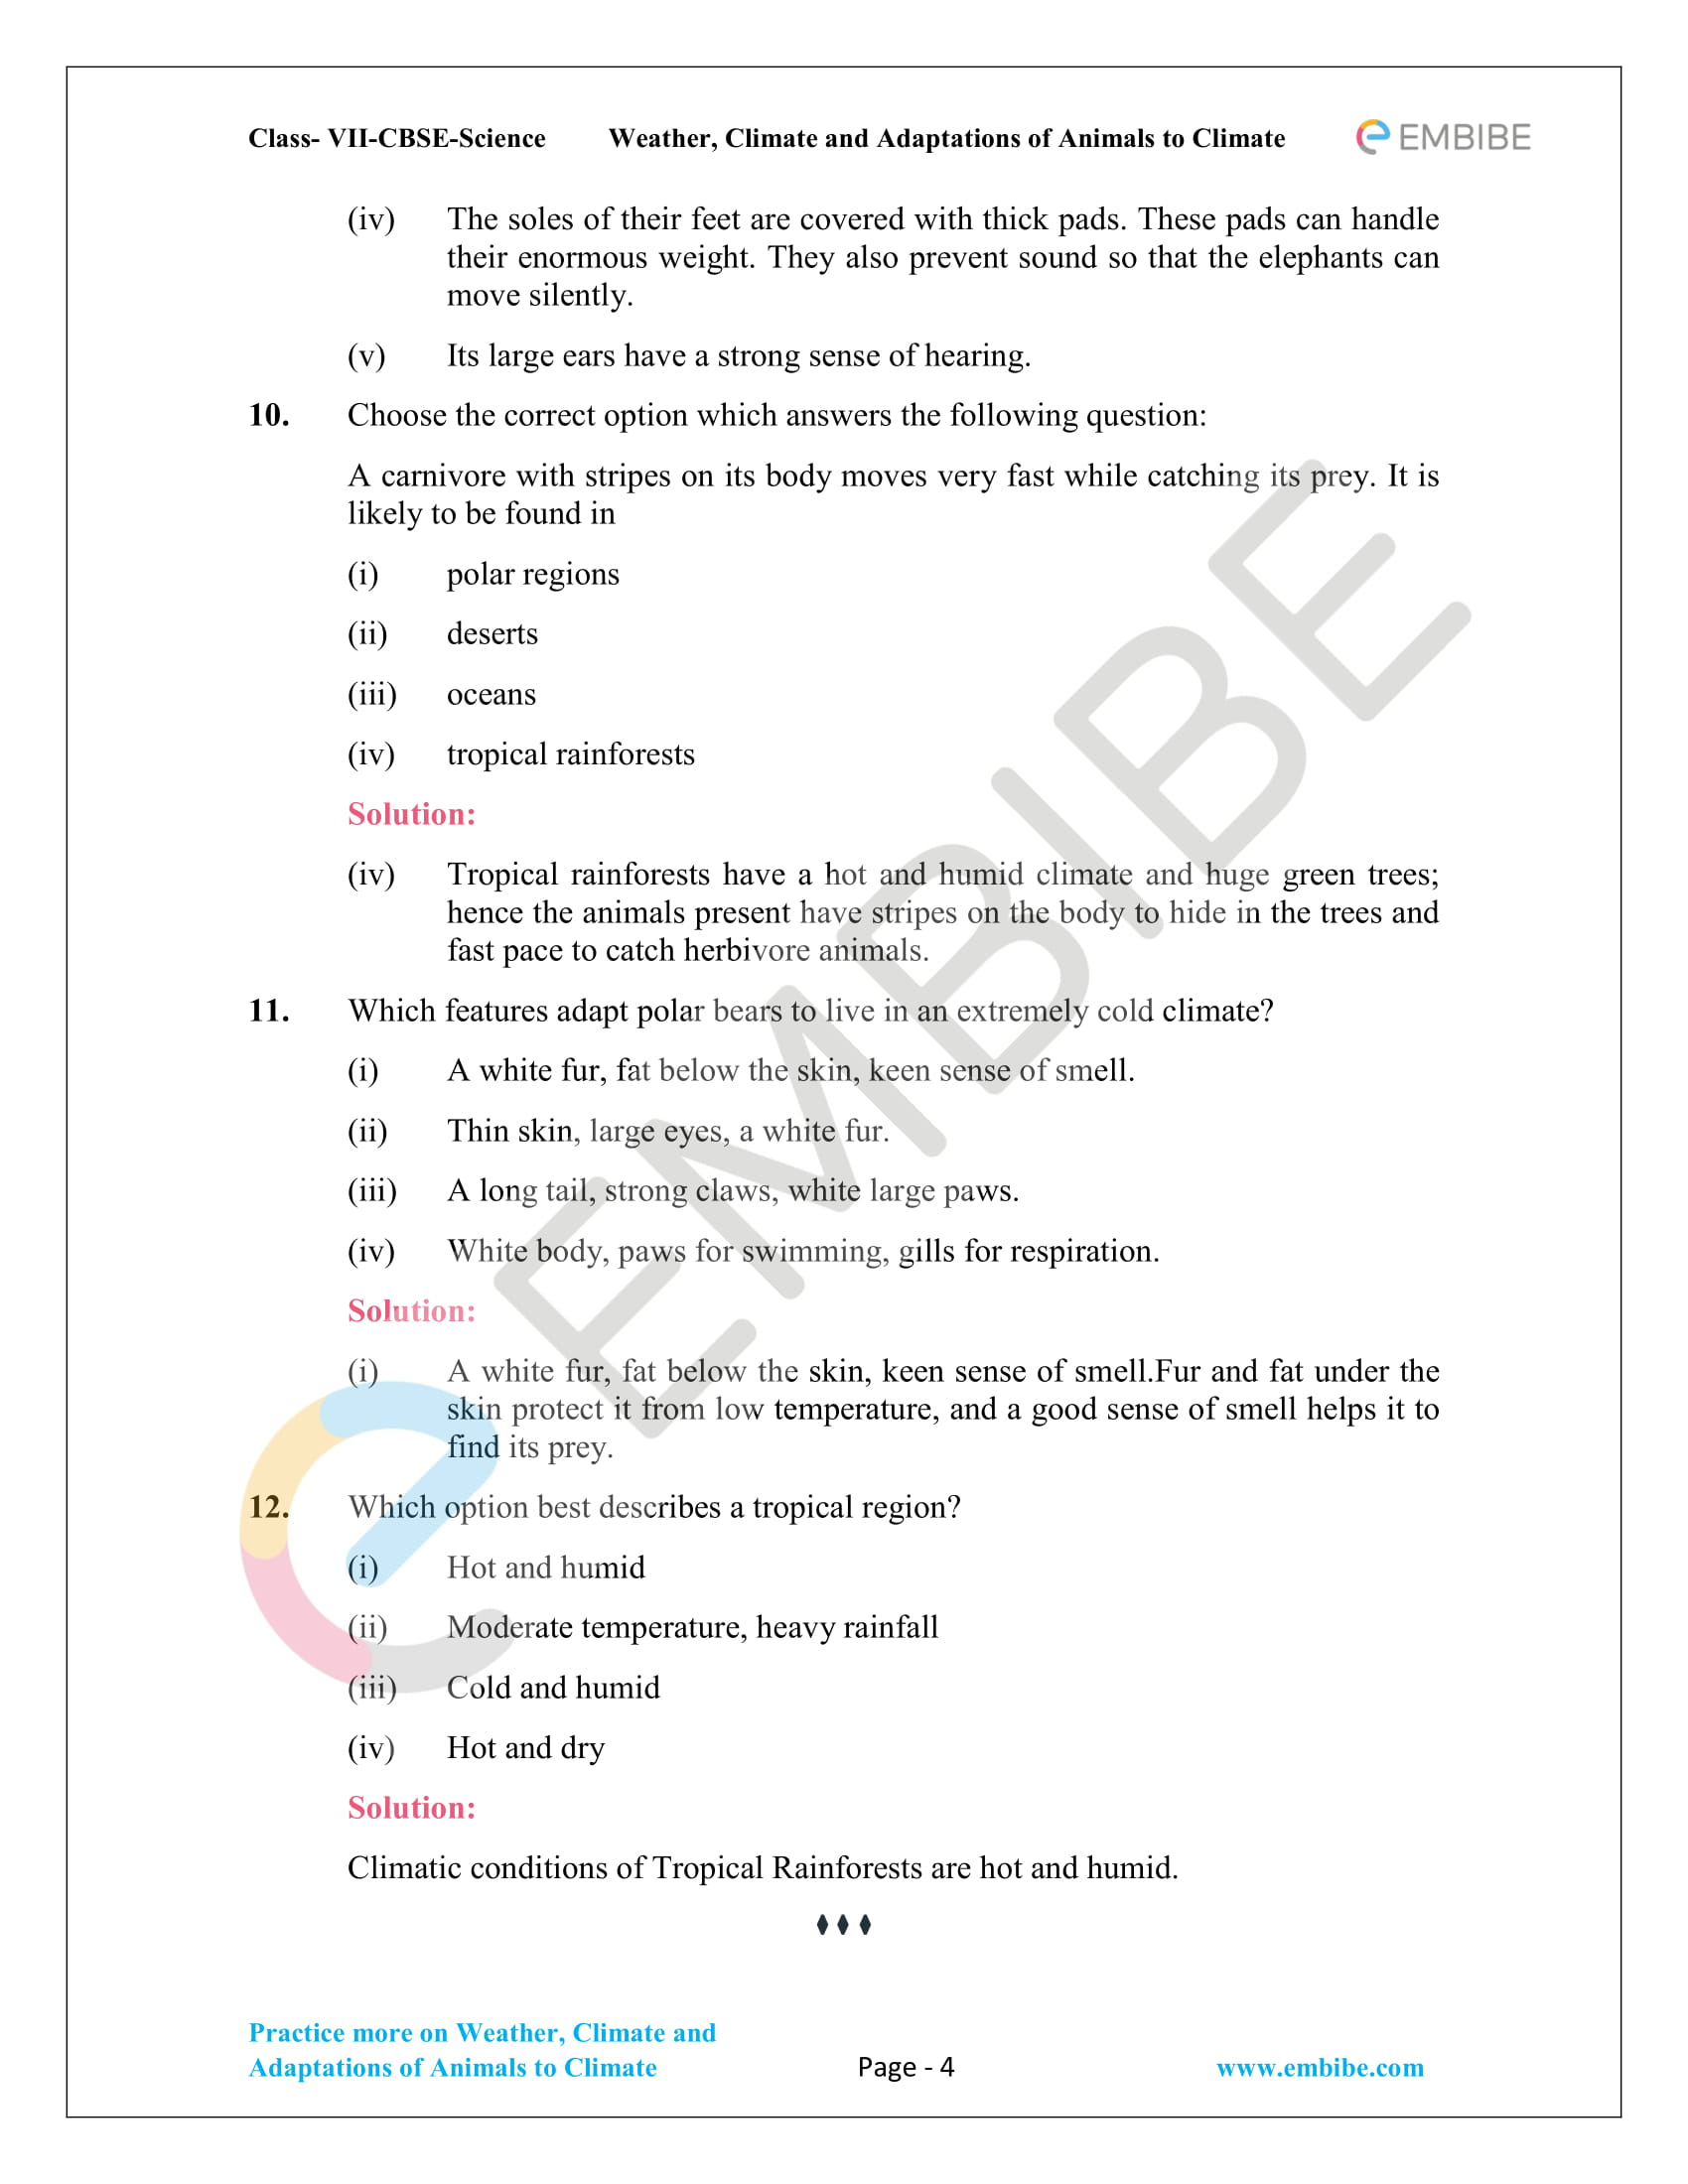 CBSE NCERT Solutions For Class 7 Science Chapter 7 Page-4